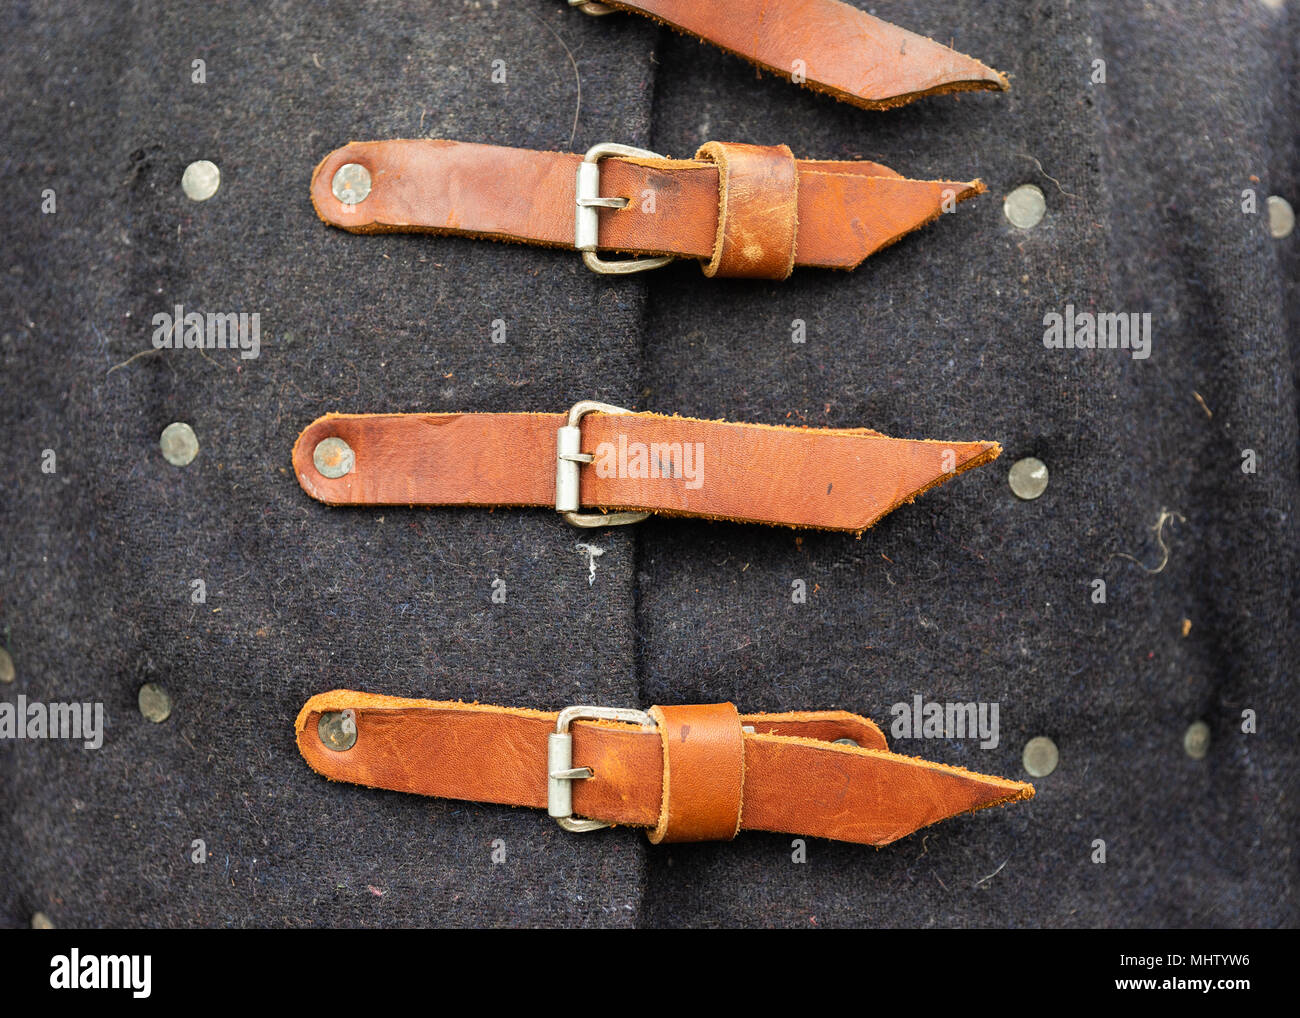 Leather fasteners or straps of a medieval knight overcoat made of the natural wool of grey color - Stock Image